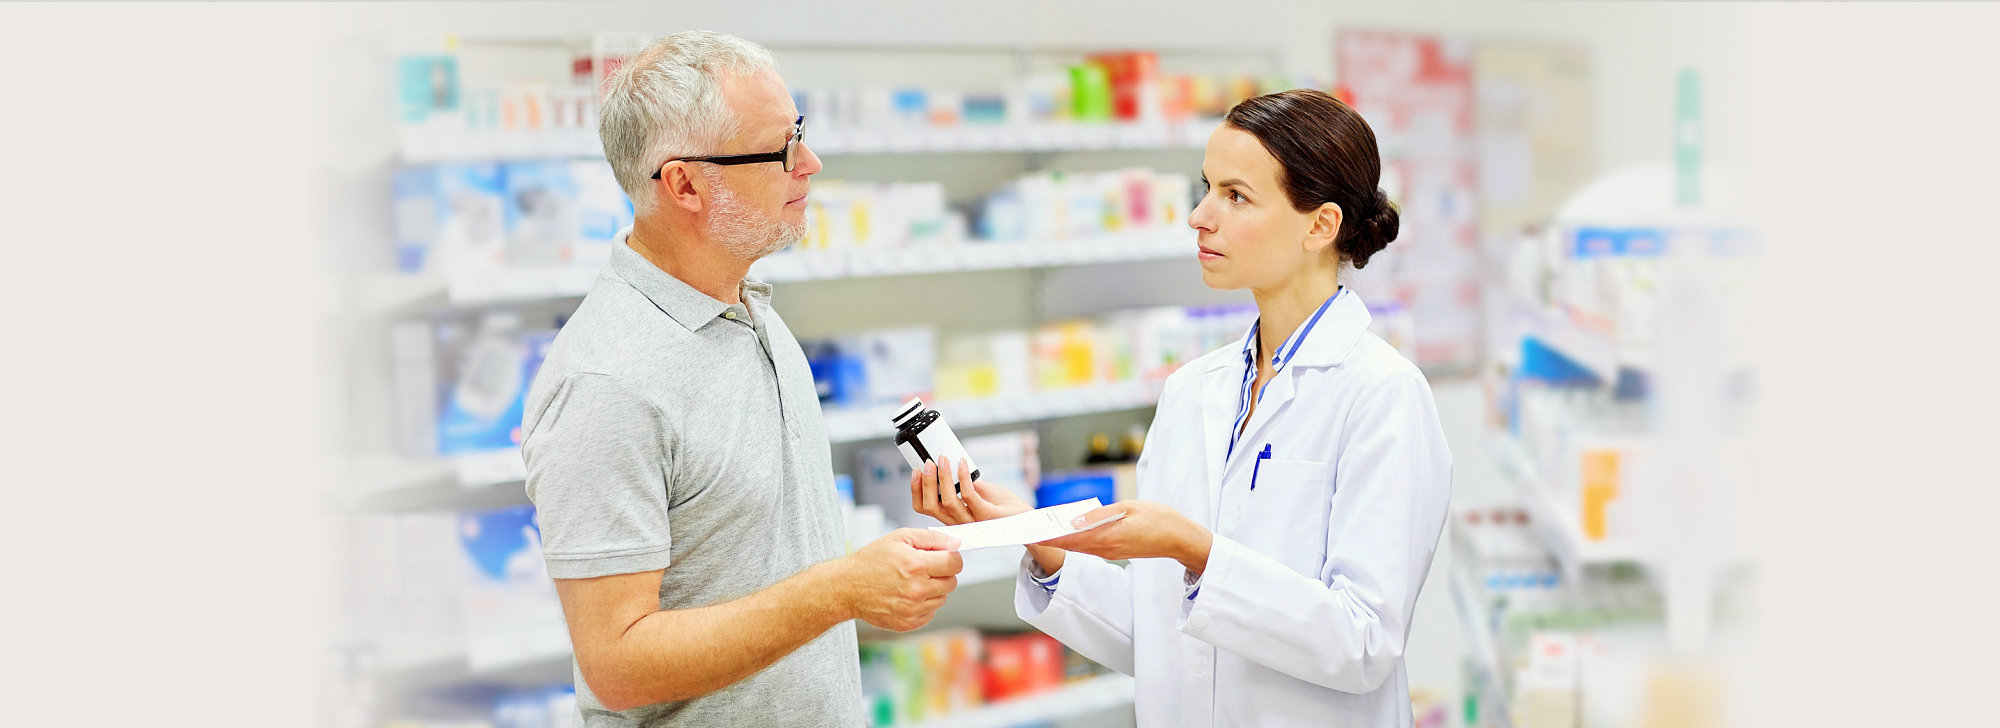 pharmacist and customer looking each other